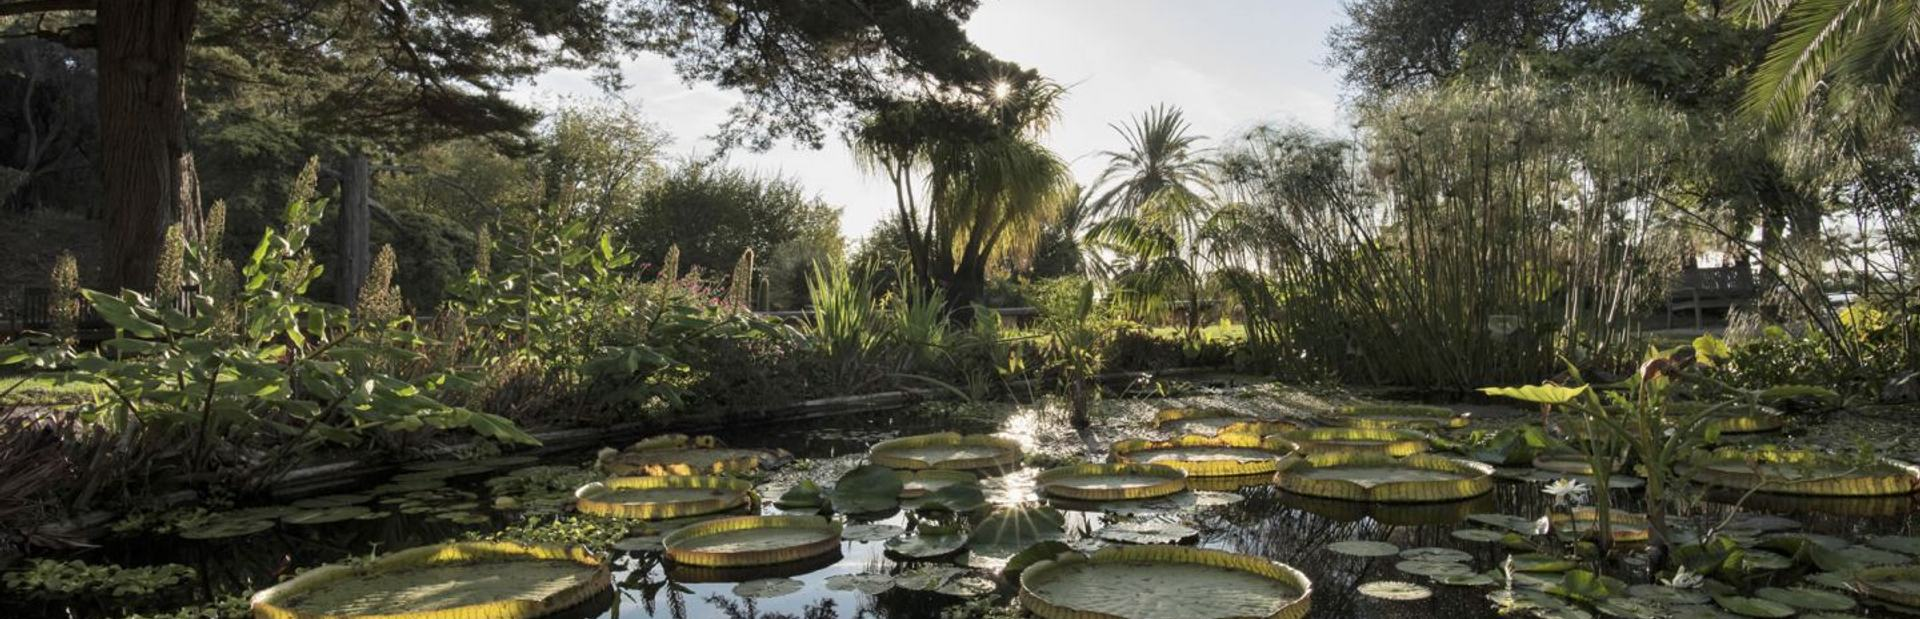 The Val Rahmeh Exotic Garden Image 1